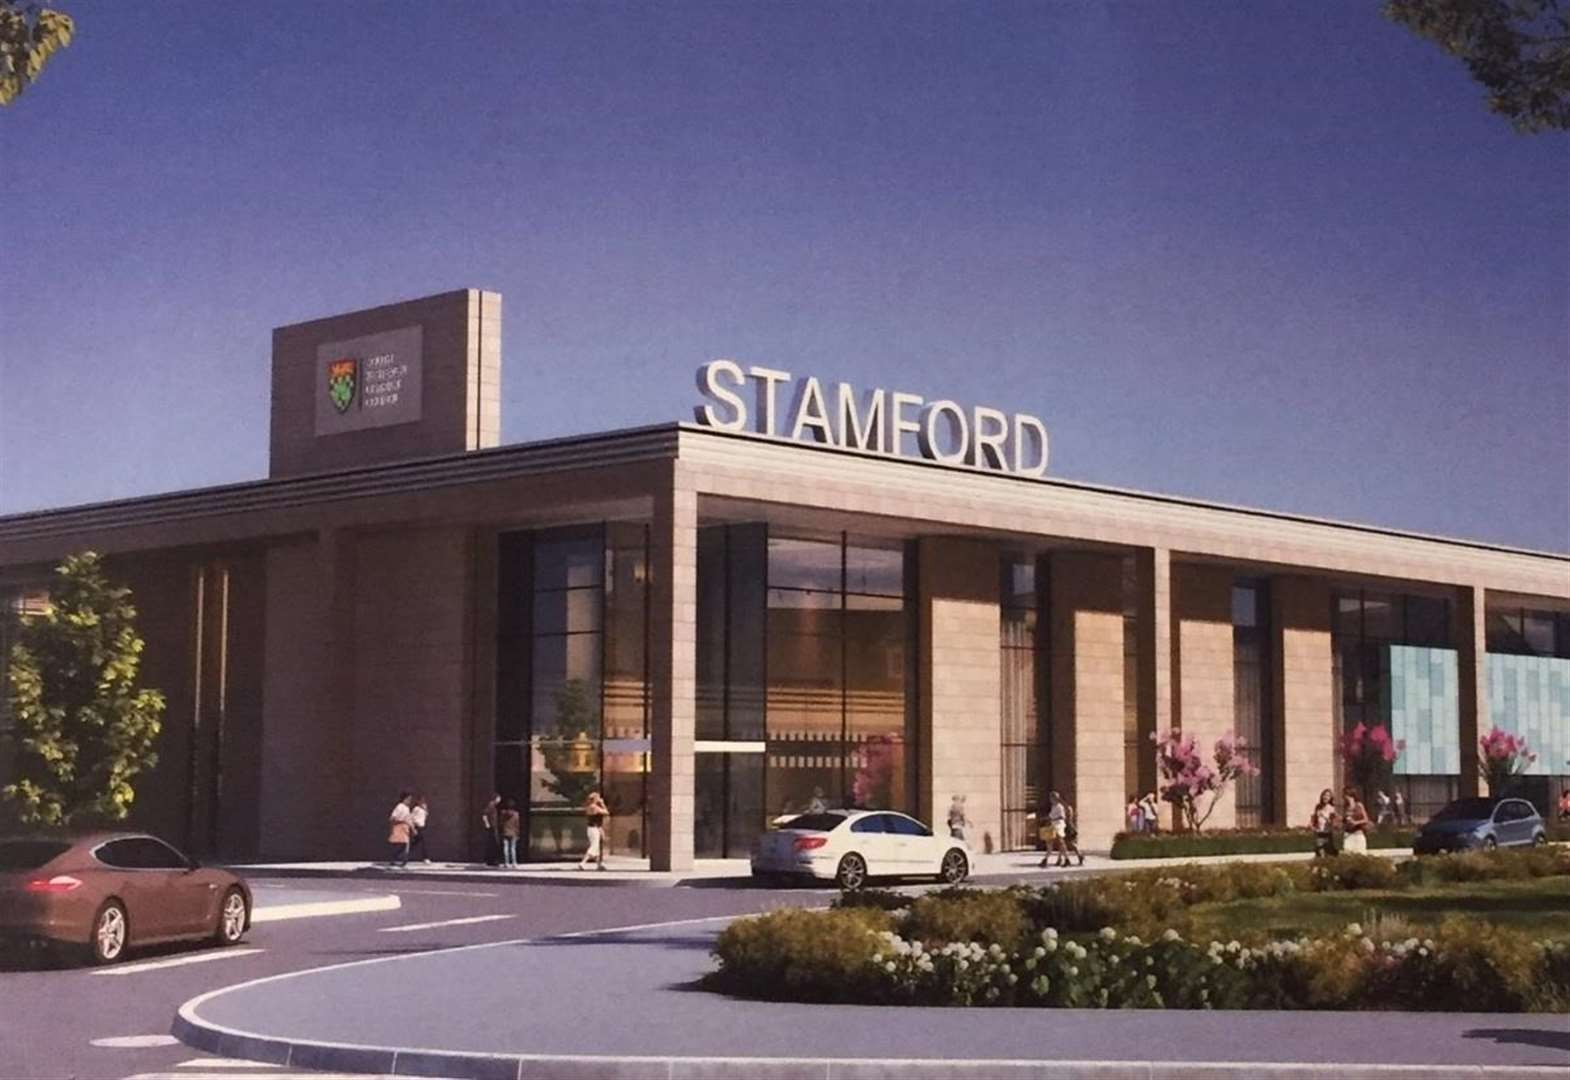 New leisure centres planned for Stamford and Deeping and a remodel for Bourne